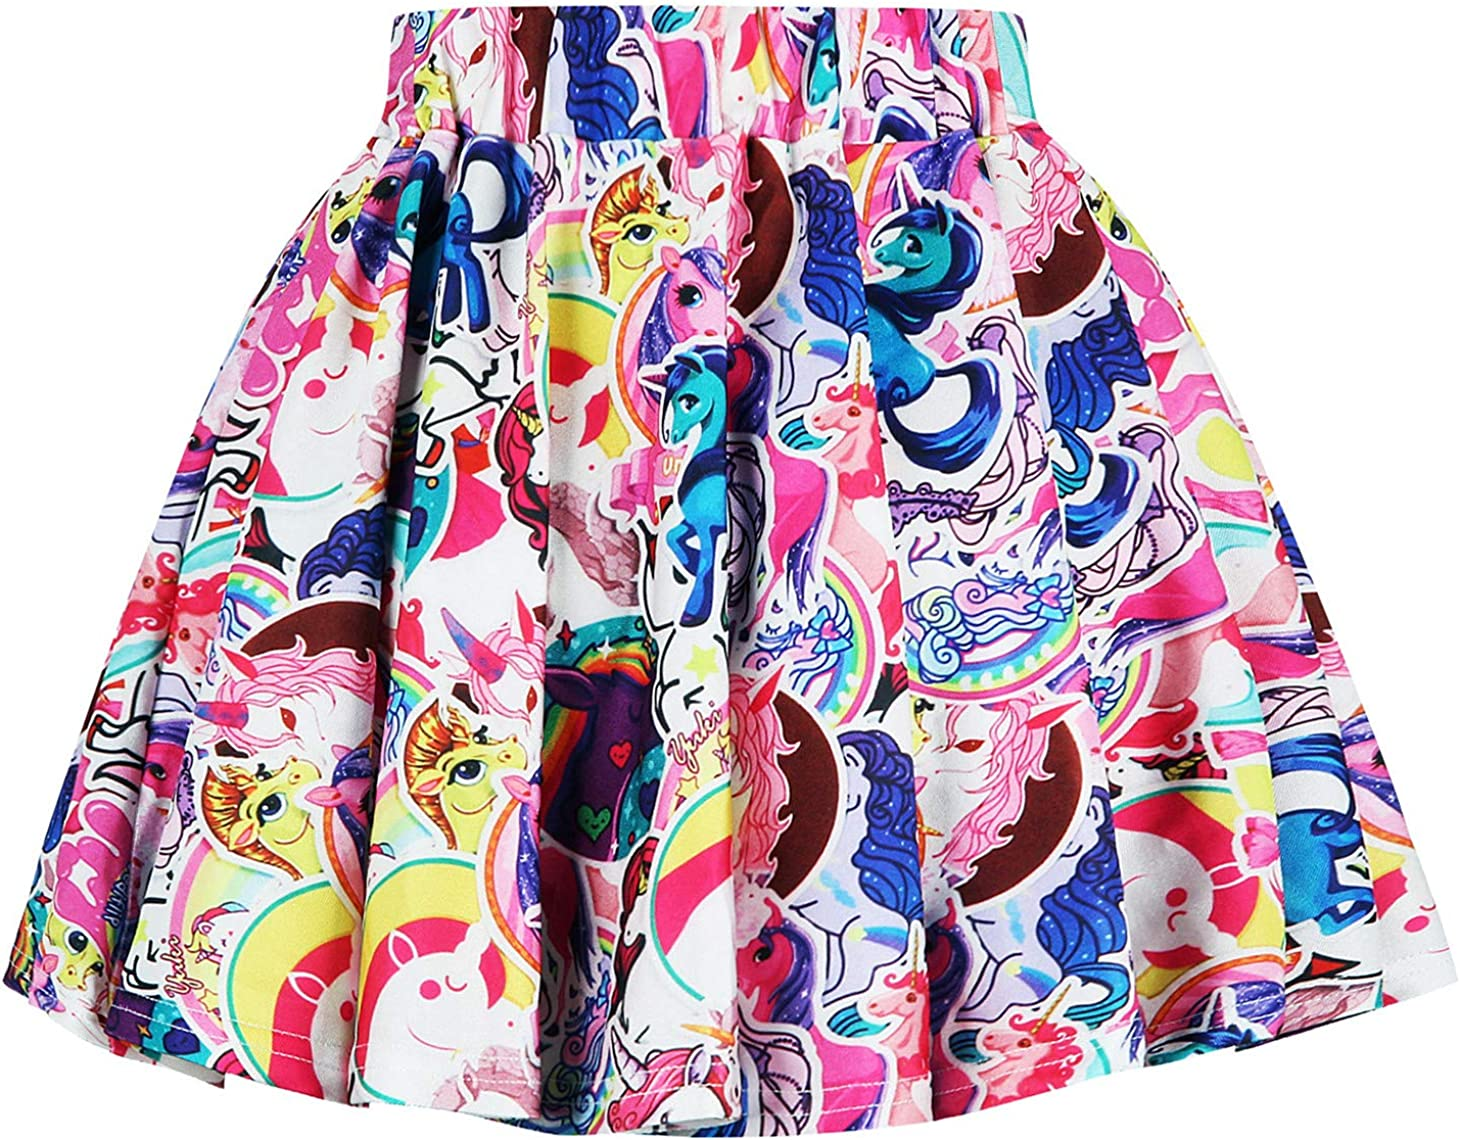 Ocean Plus Ragazze Gonna Plissettata Colorate Gonna a Pieghe Mini Anni 50 Vintage Tutu da Ballo Multicolore a Vita Alta